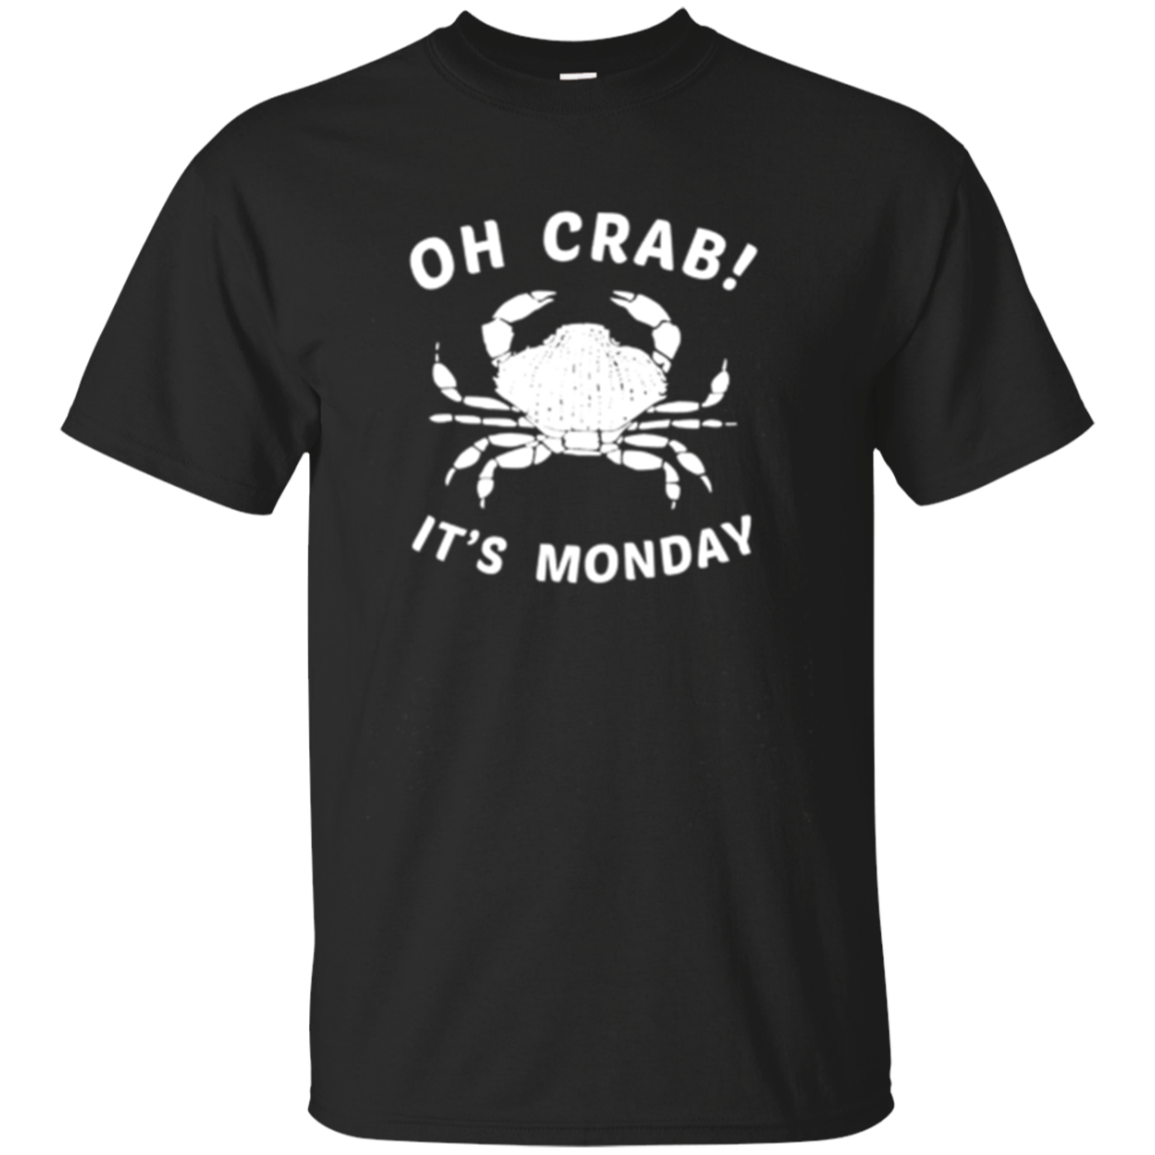 Oh Crab It's Monday Long Sleeve Shirt, Funny Crabby Apparel